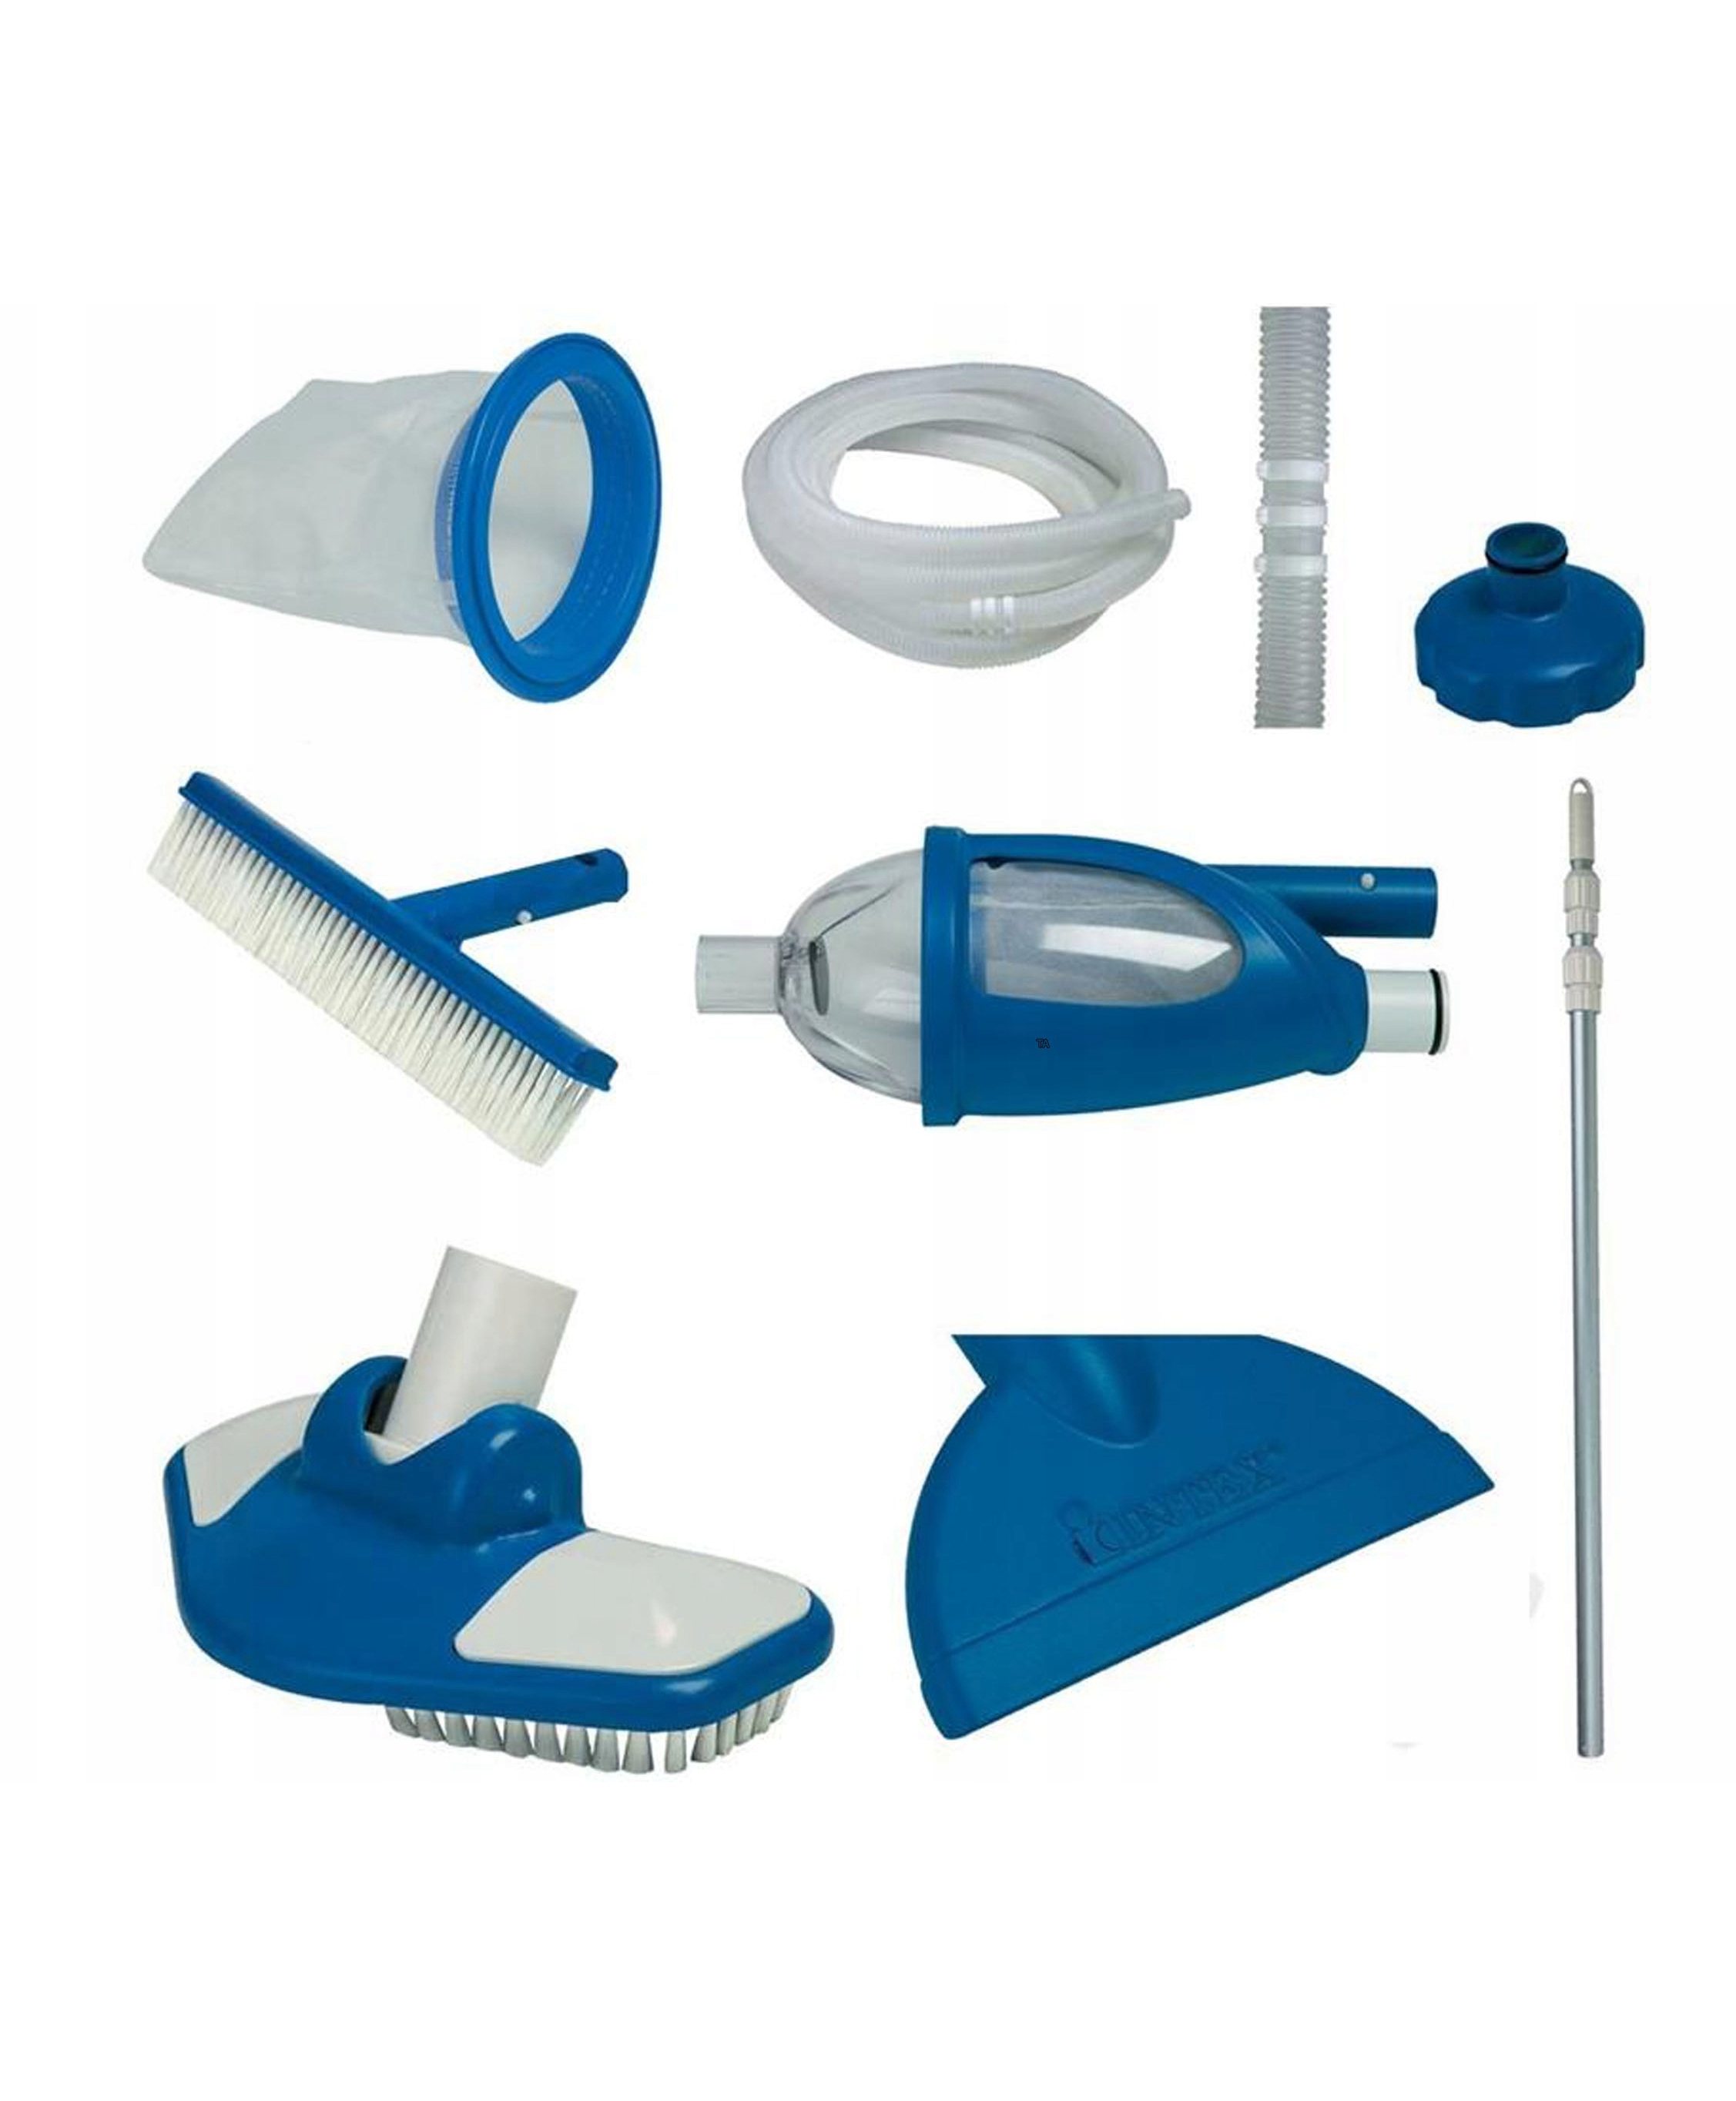 Set For Cleaning Pool Intex Deluxe, With Retractable Grip, Accessory For Cleaning Basin Item No. 28003